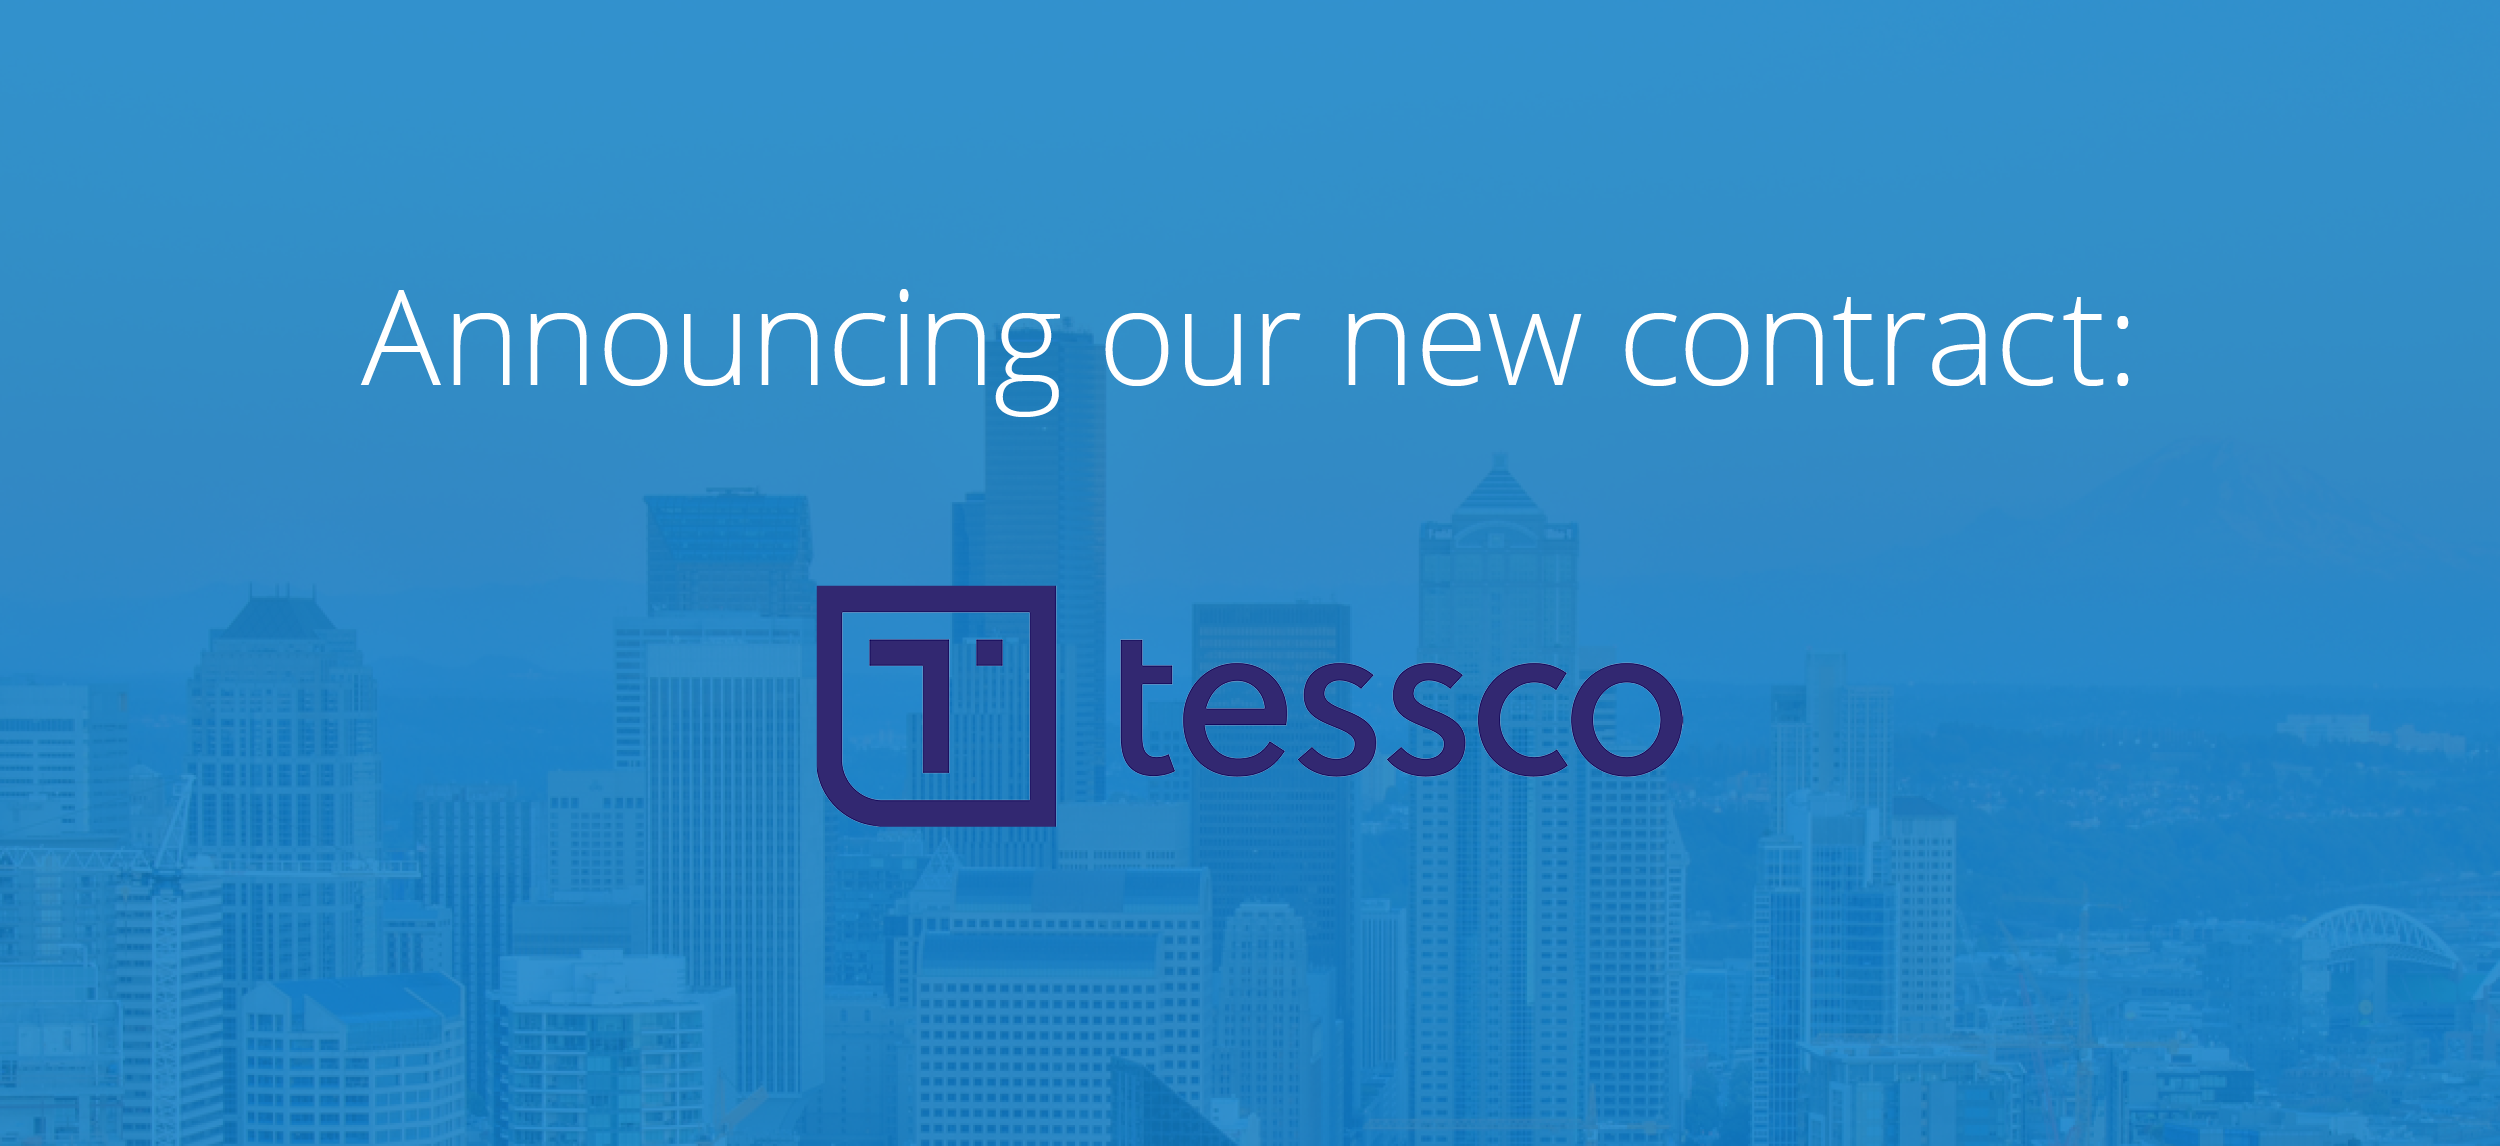 Announcing Tessco Incorporated: Our Newest Contract